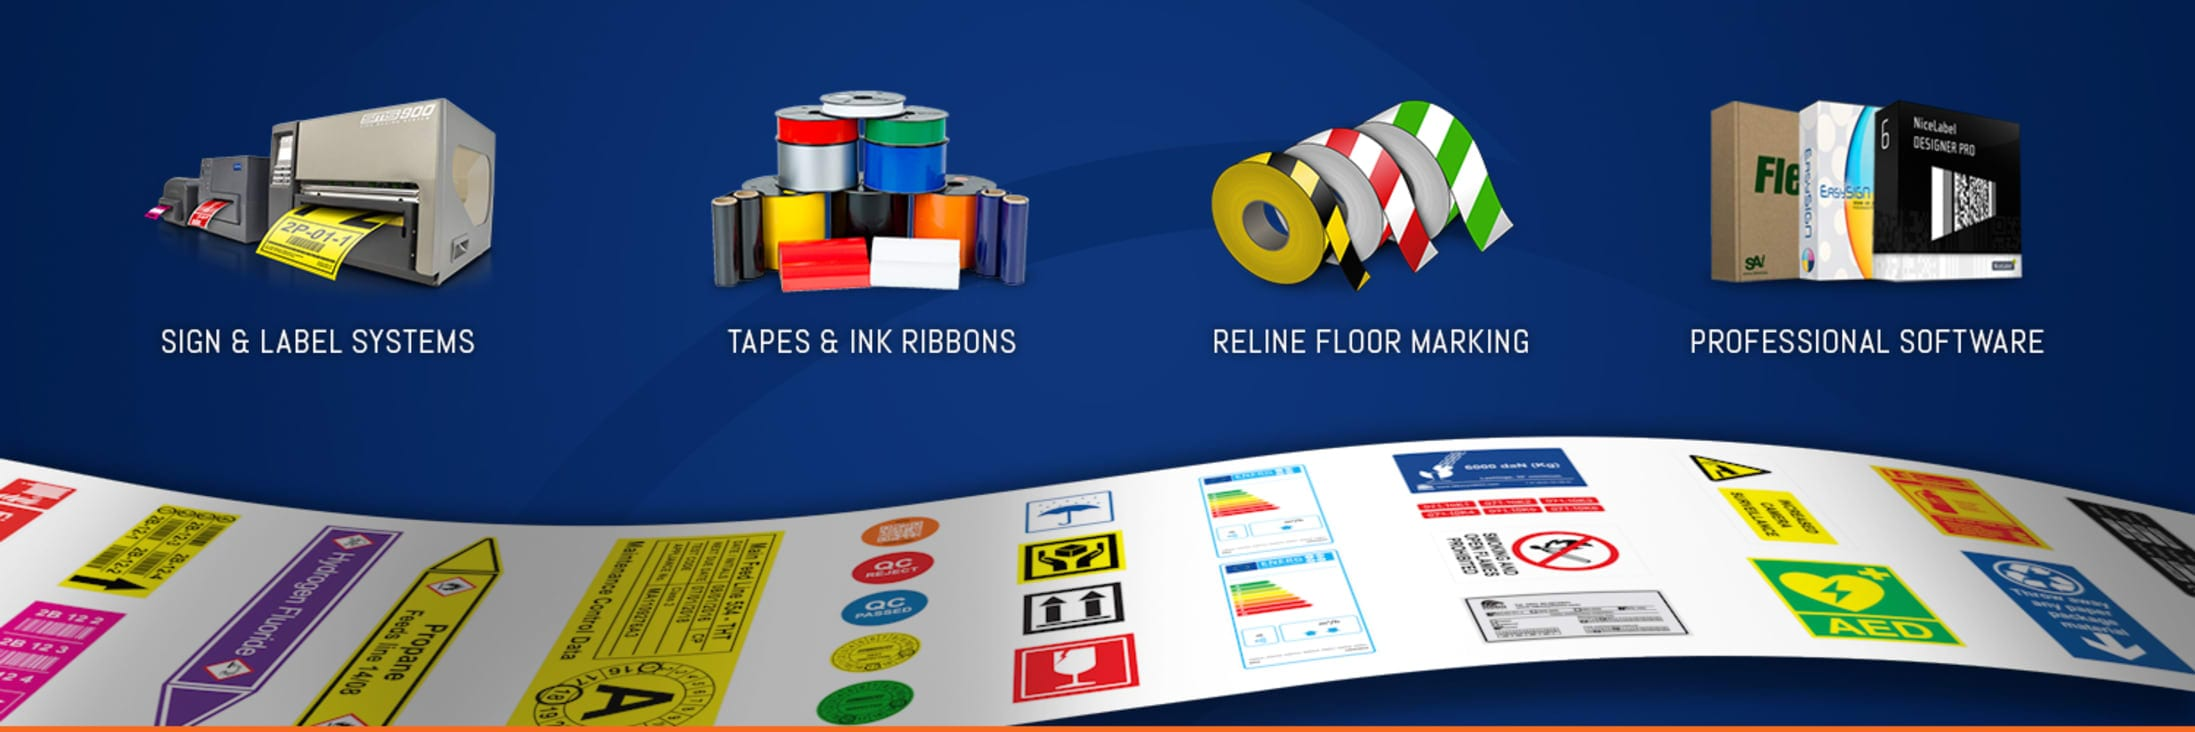 Rebo Systems Banner